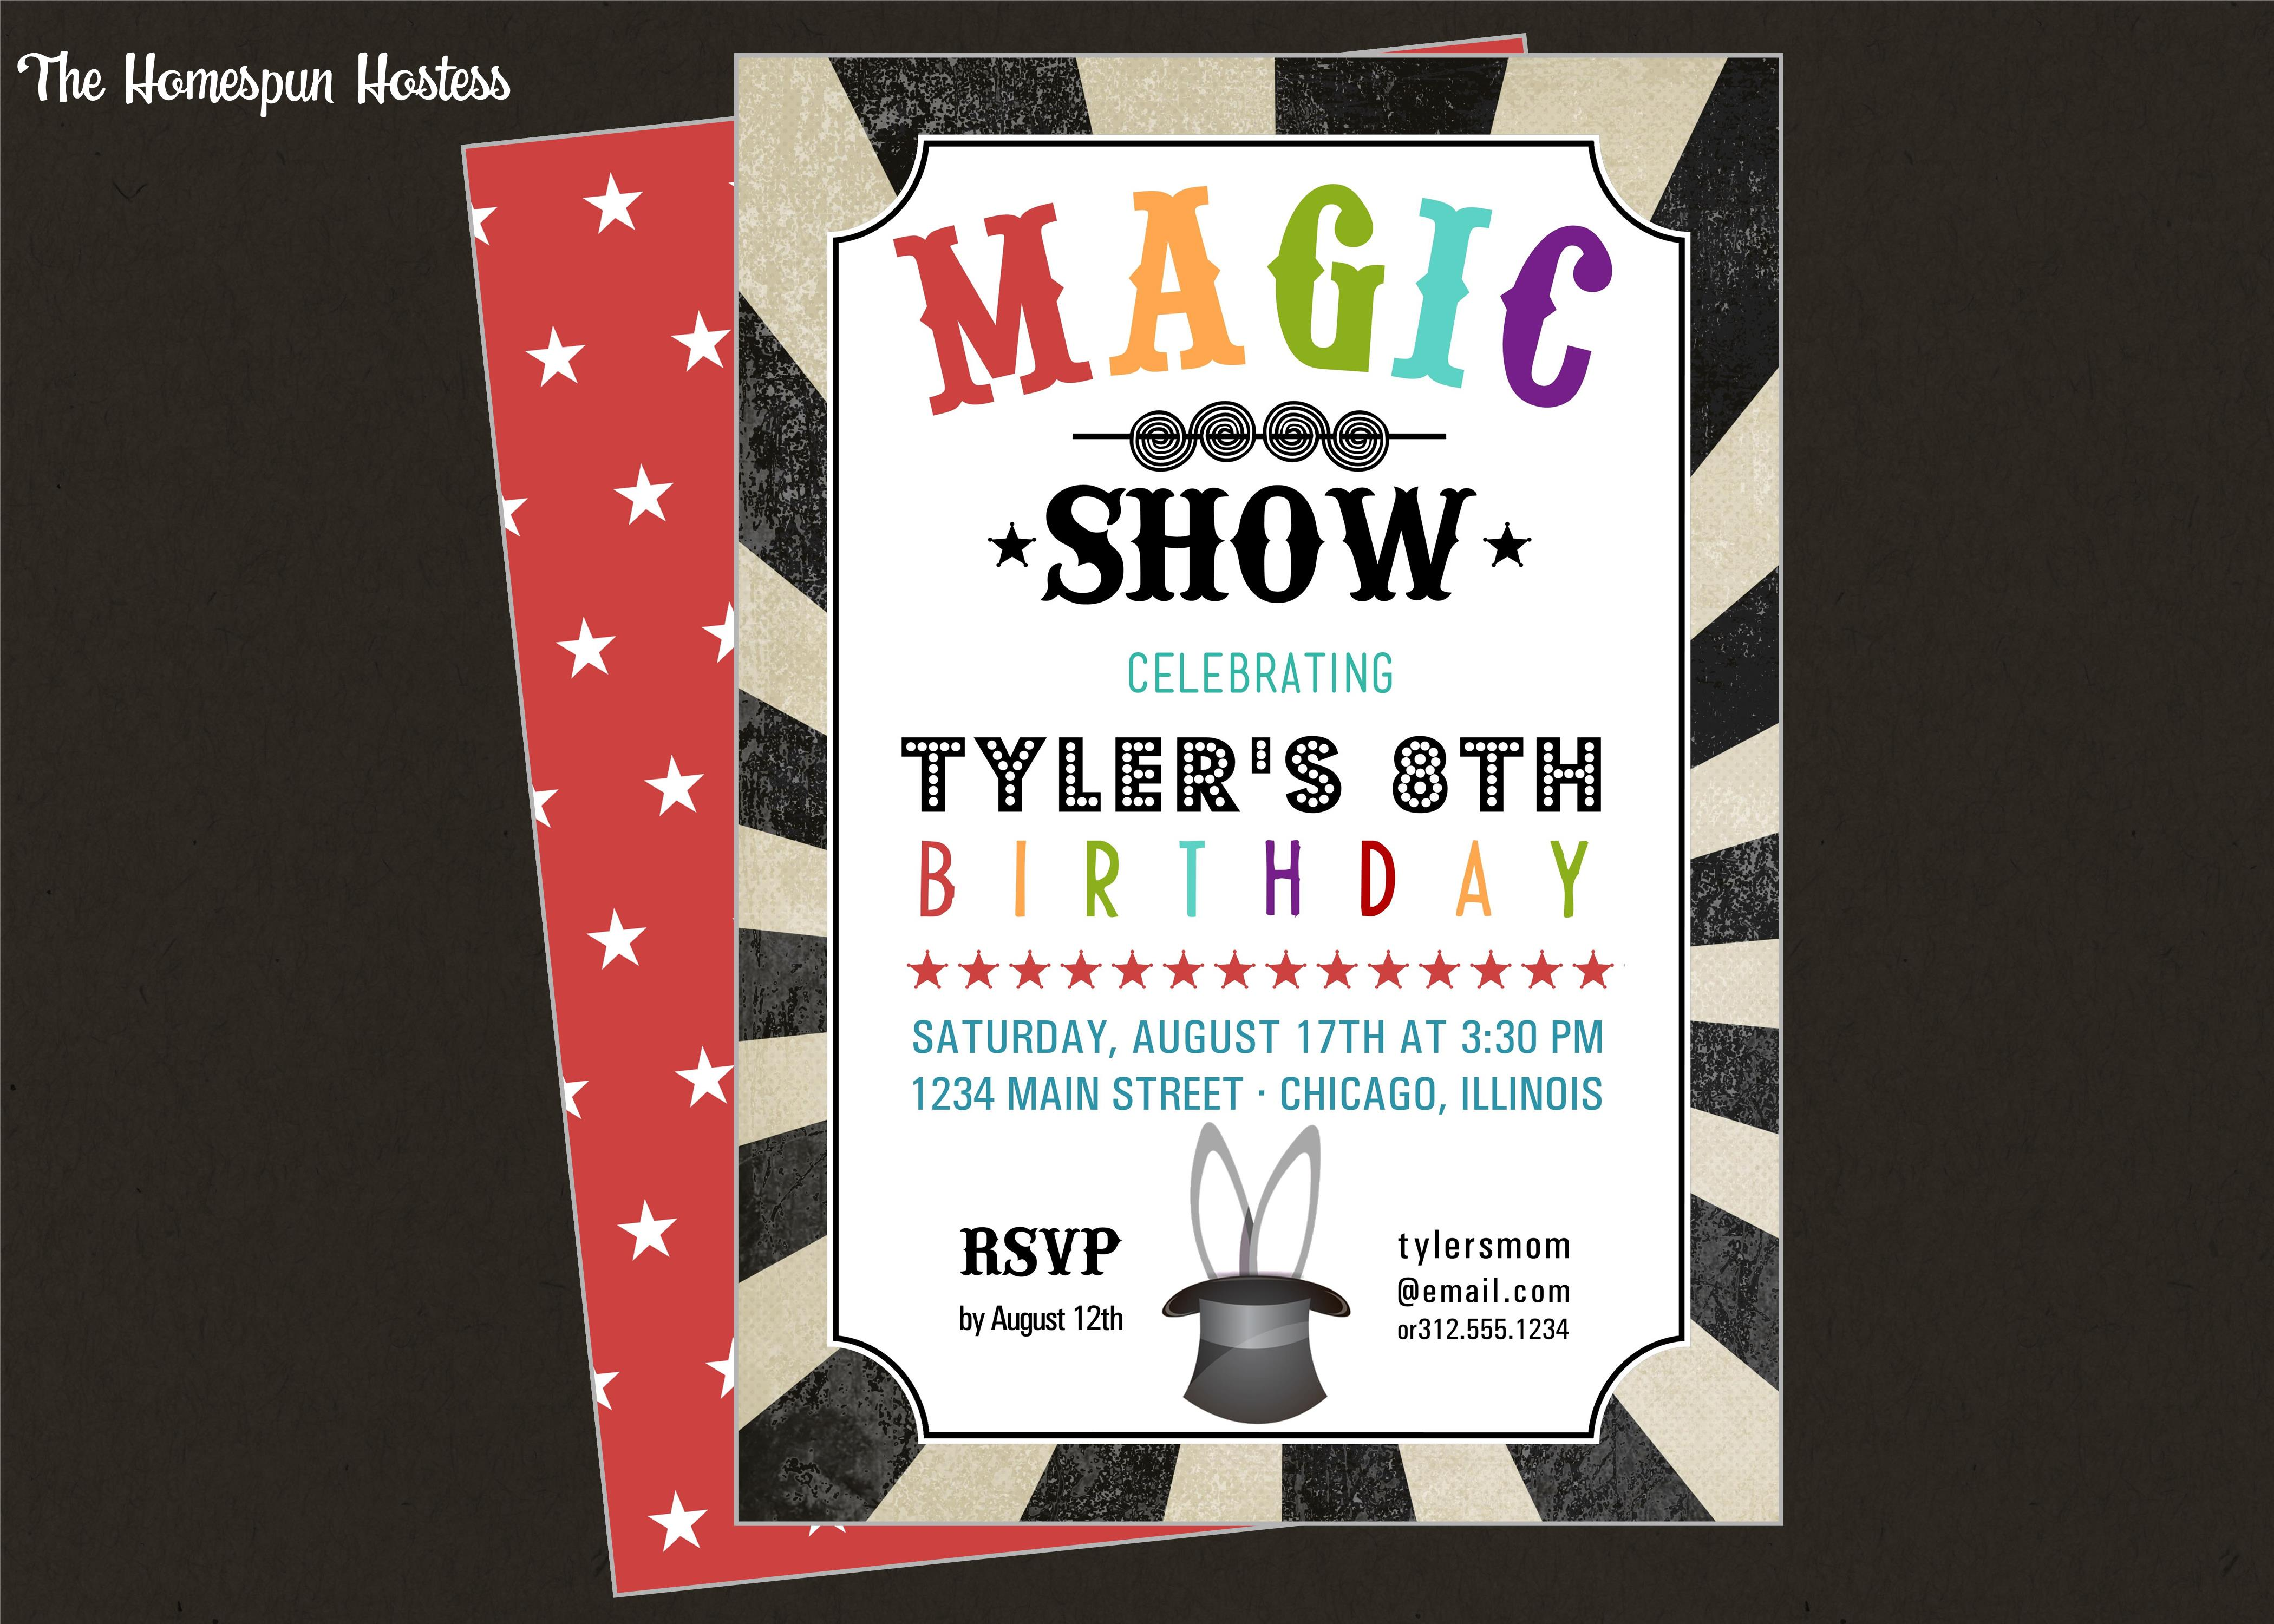 Dorable Magic Show Party Invitations Pattern - Resume Ideas ...